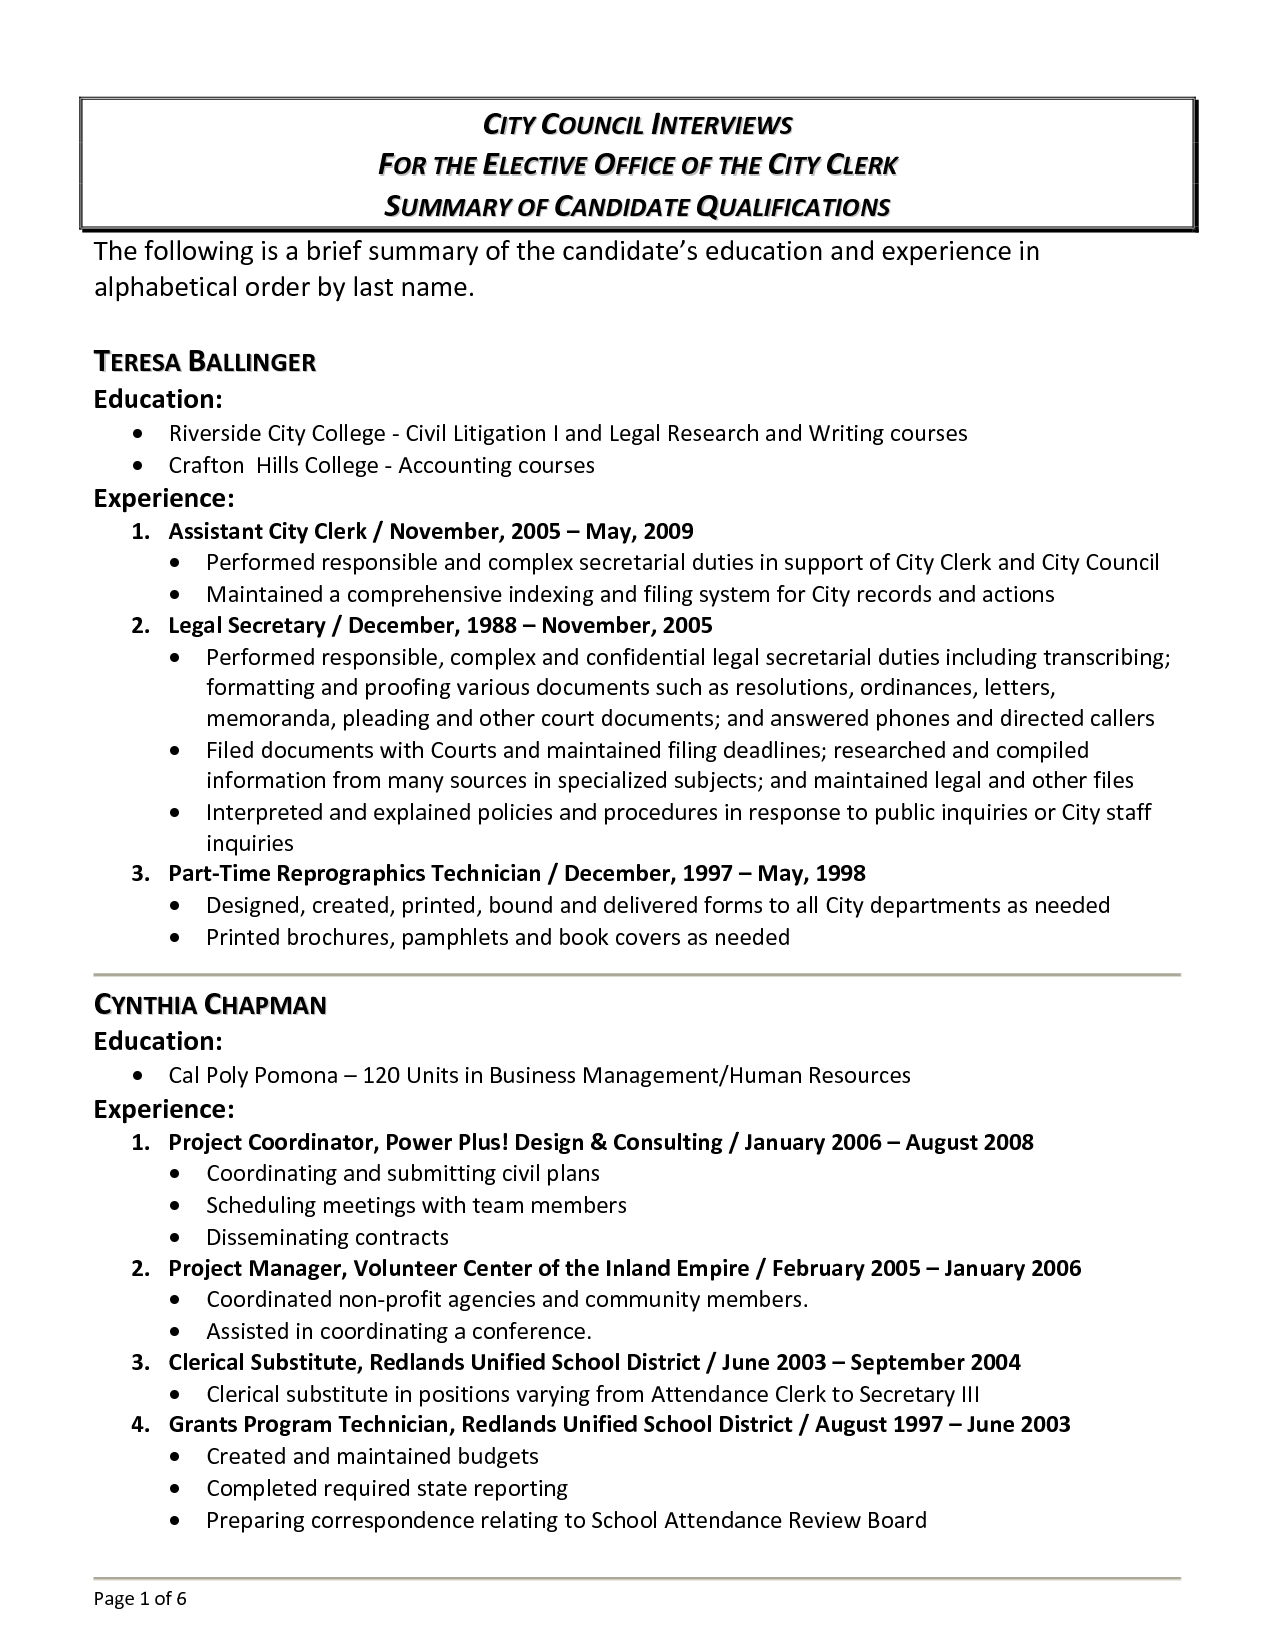 summary of qualifications how to describe yourself on your resume - Qualifications For Resume